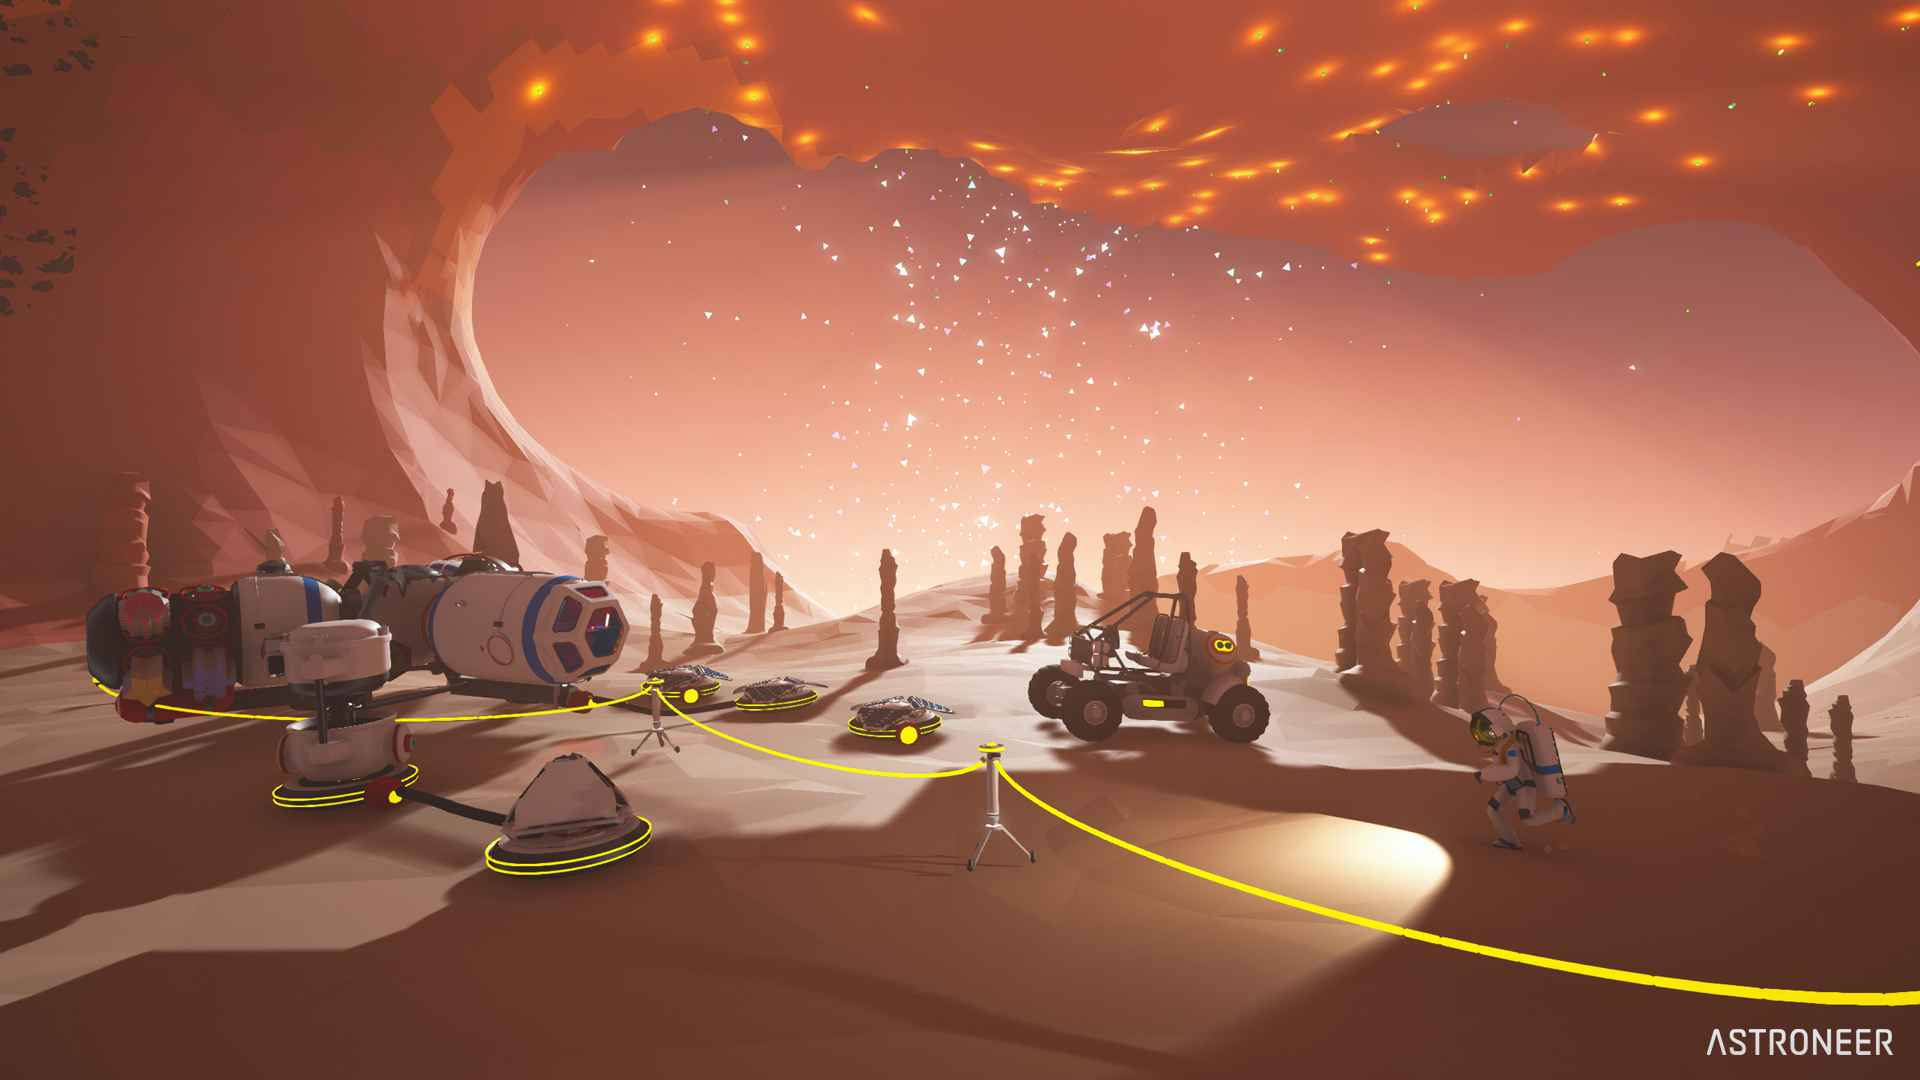 Astroneer Coming To Ps4 According To New Listing